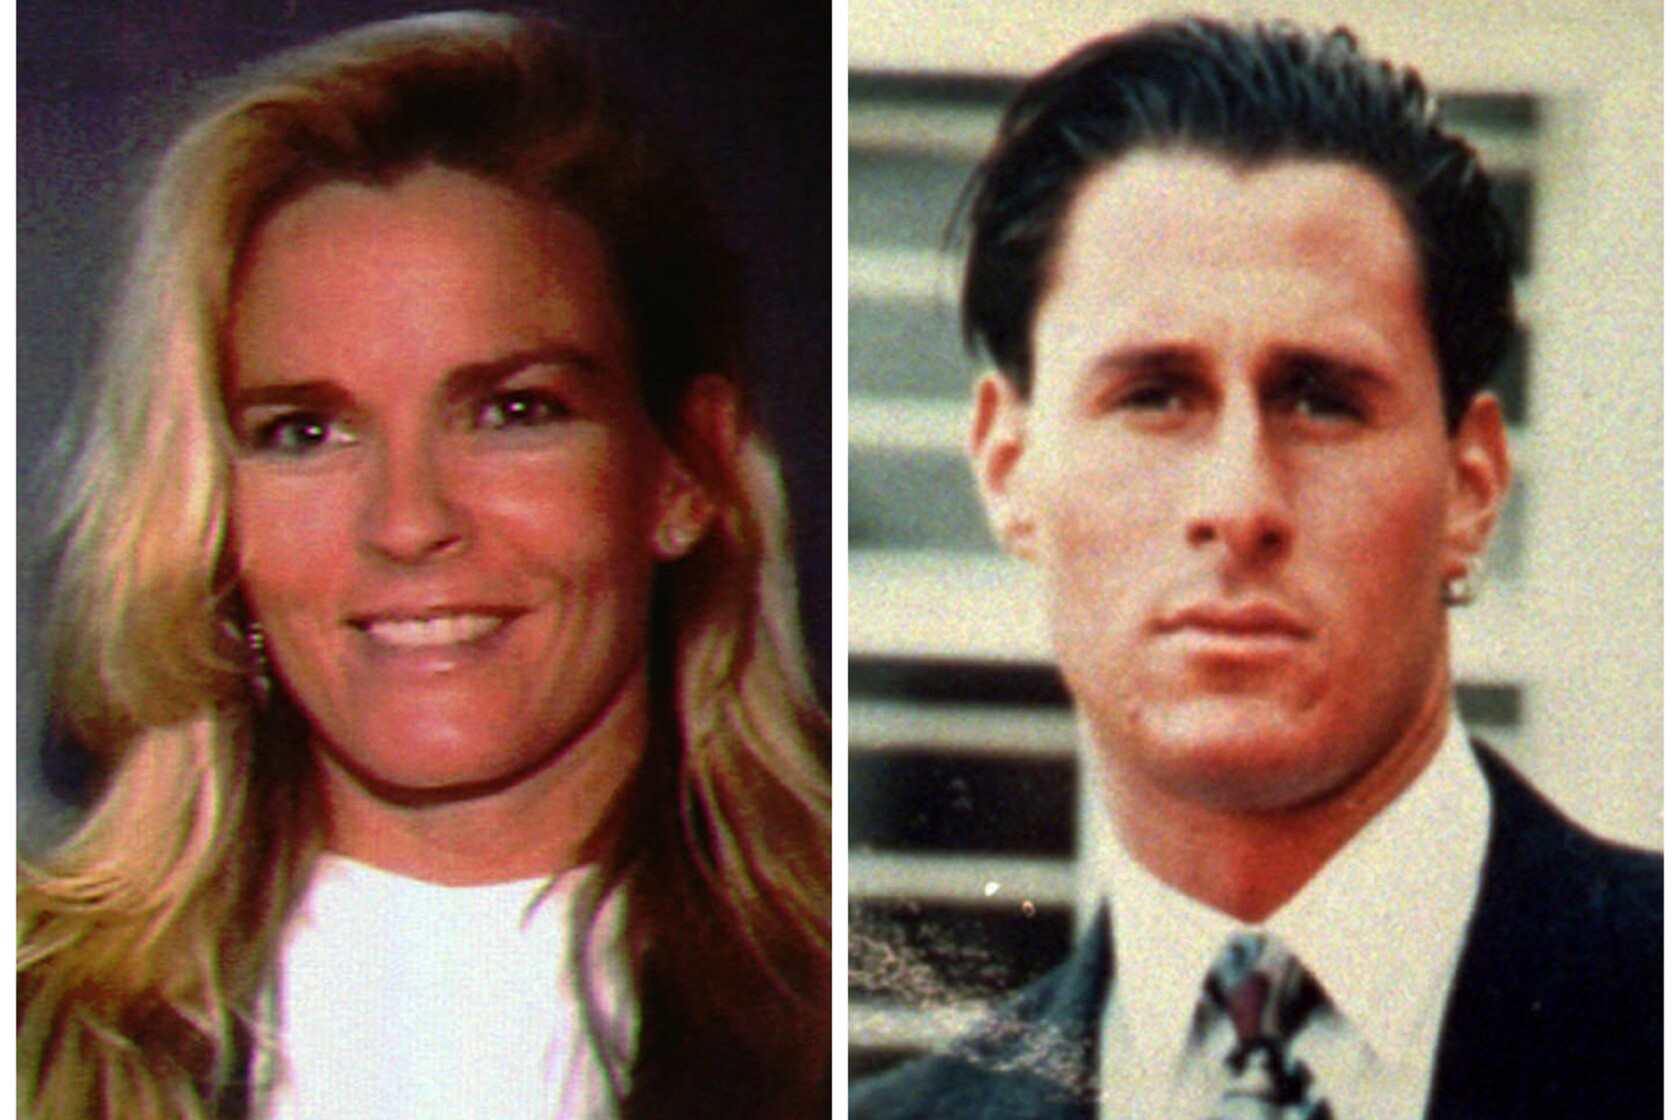 Amber Simpson Videos from the archives: o.j. simpson's ex-wife found stabbed to